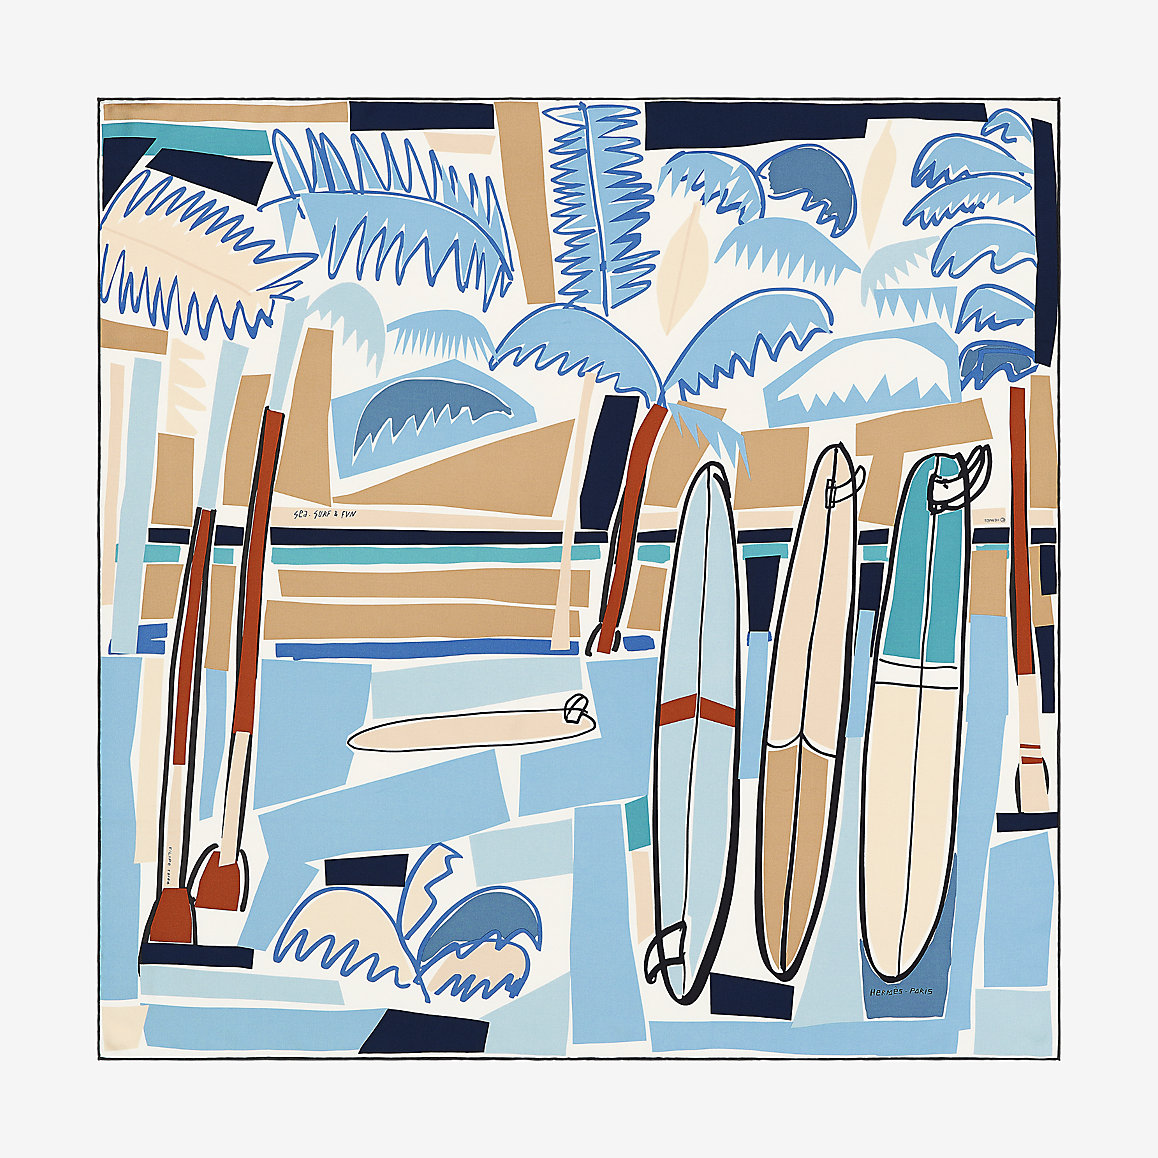 sea-surf-and-fun-scarf-90--003161S 08-front-1-300-0-1158-1158.jpg